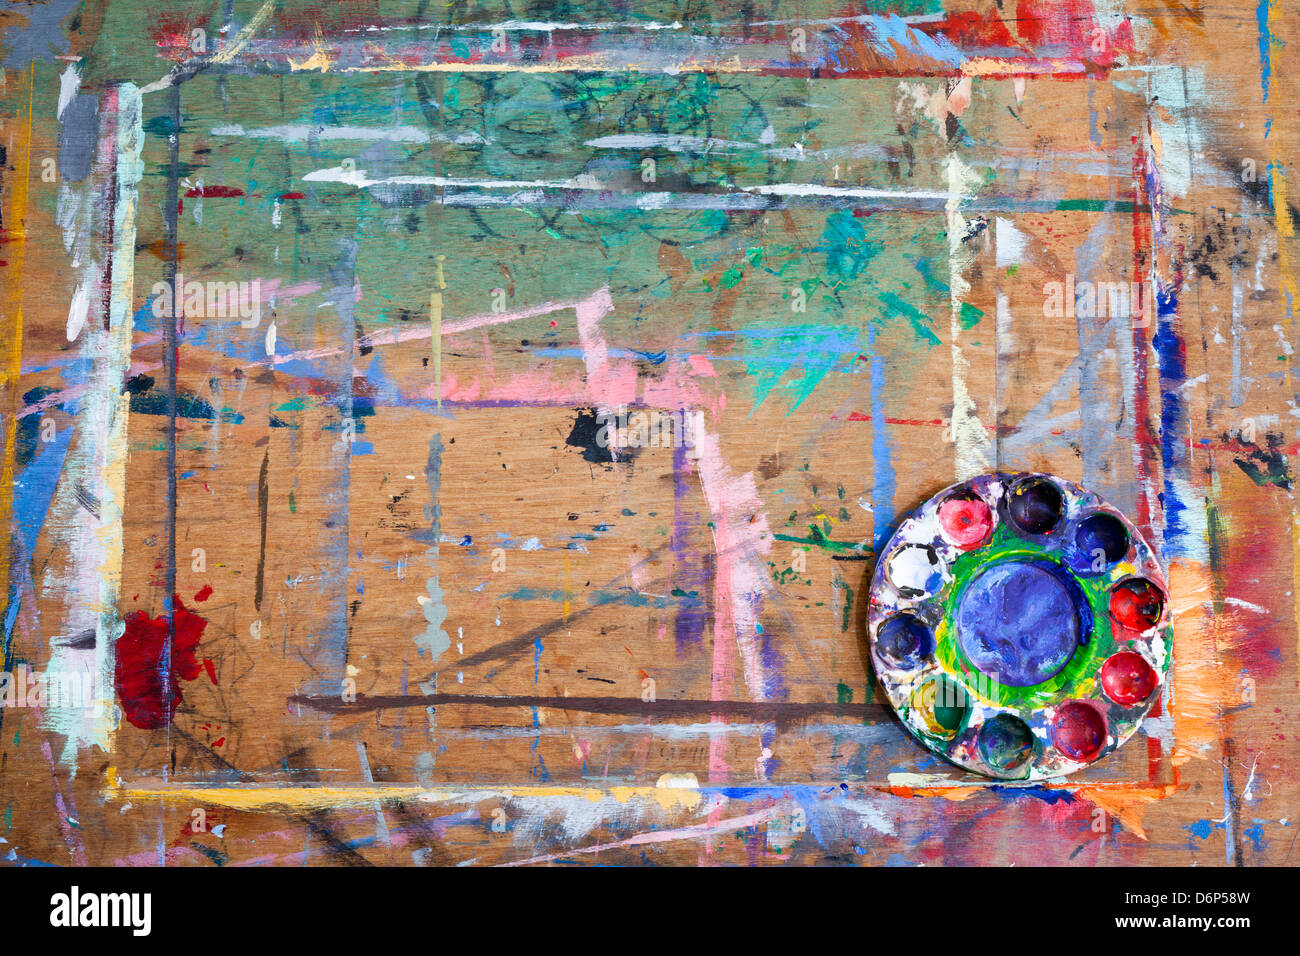 A paint splashed wooden board with a messy plastic paint palette in the bottom right corner. - Stock Image